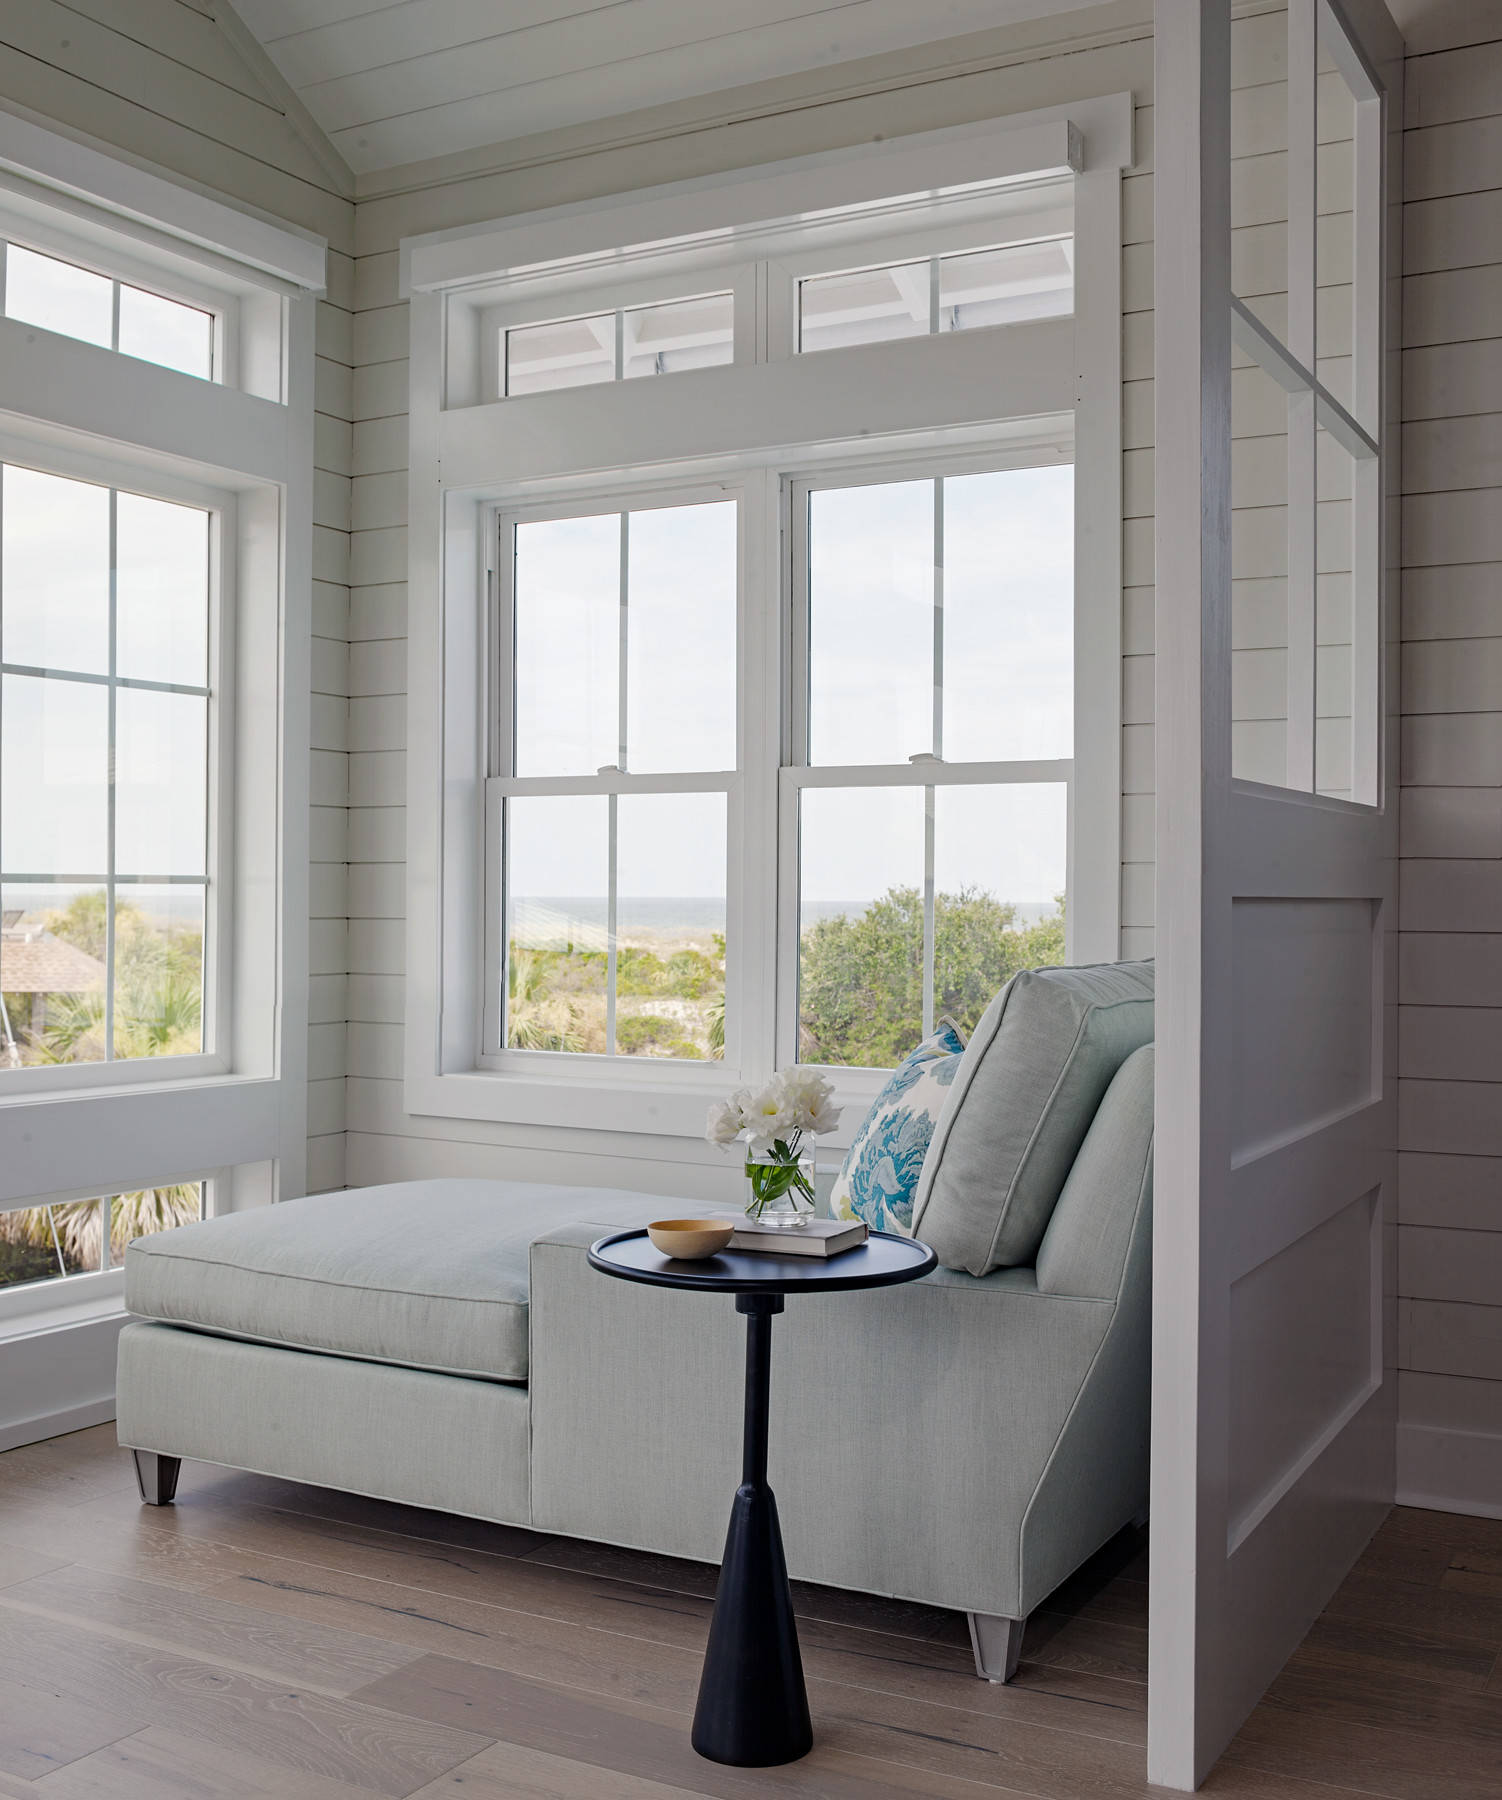 21 Beautiful Sunroom Pictures & Ideas - September, 21  Houzz